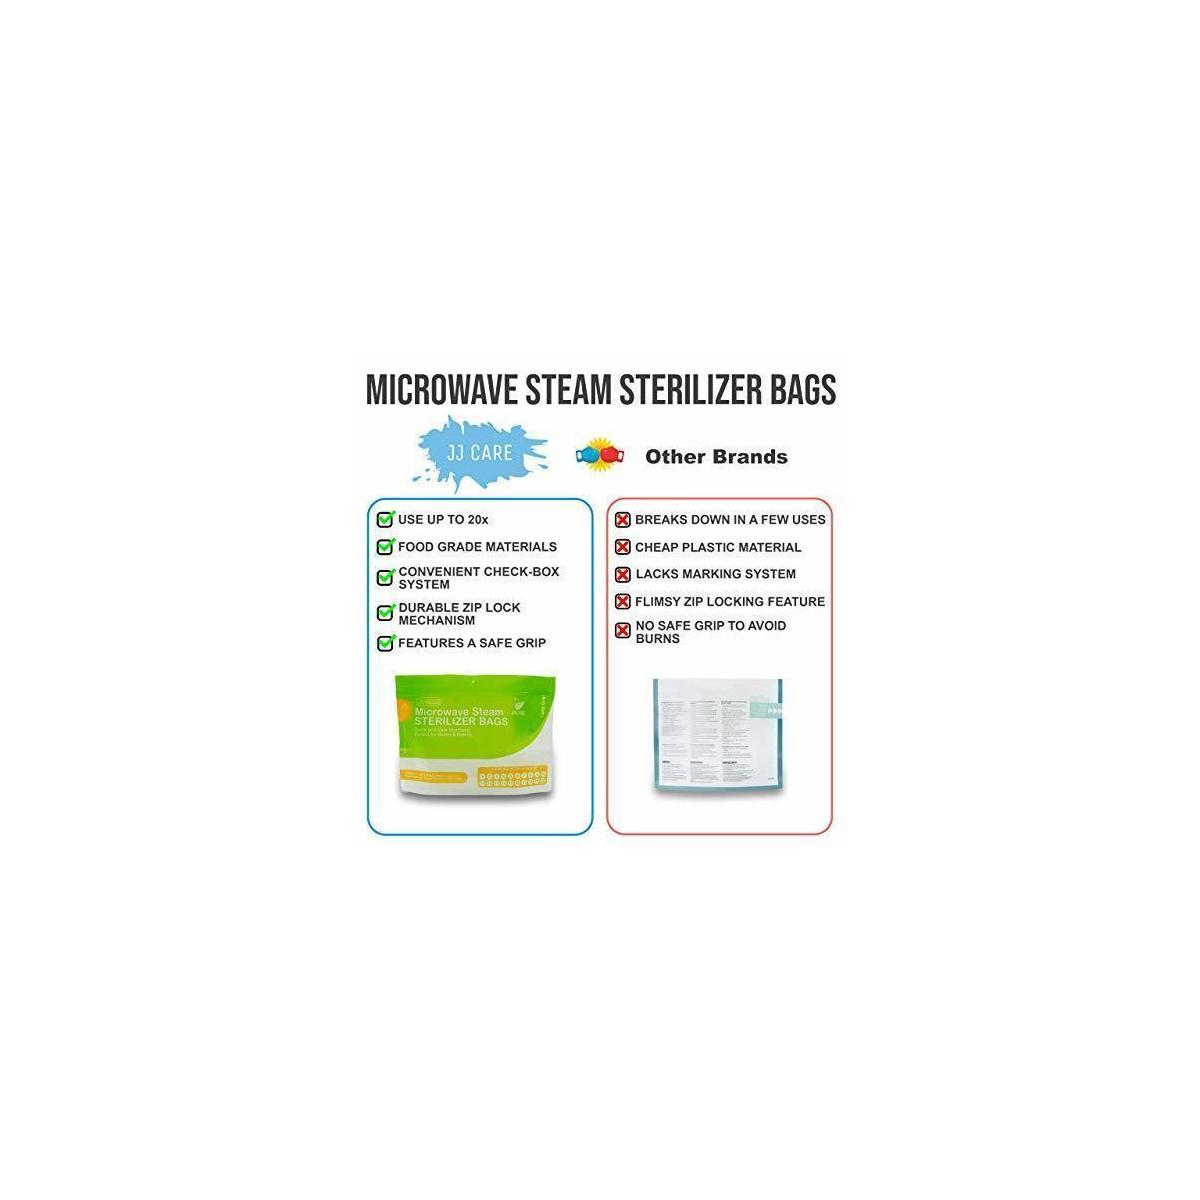 [Pack of 20] Microwave Steam Sterilizer Bags - 400 Uses - Reusable Baby Bottle Sterilizer Bags - Steam Bags for Breast Pump - Microwave Sterilizing Bags (4 Boxes/ 5 Bags per Box)